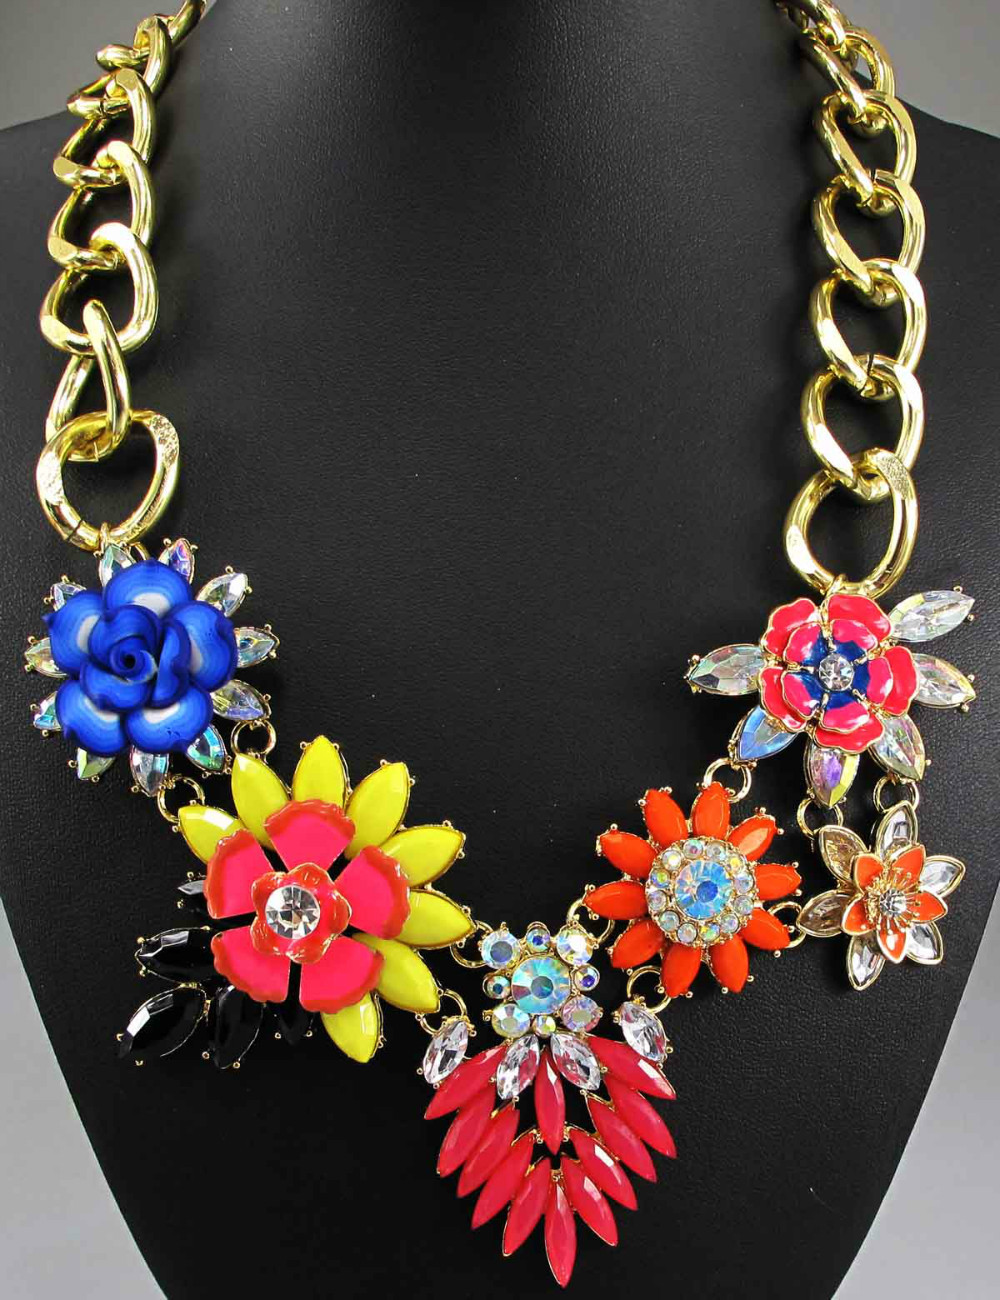 Newest Gorgeous Fashion Necklace Jewelry crystal Department Statement Necklace Women Choker Necklaces & Pendants Q588(China (Mainland))